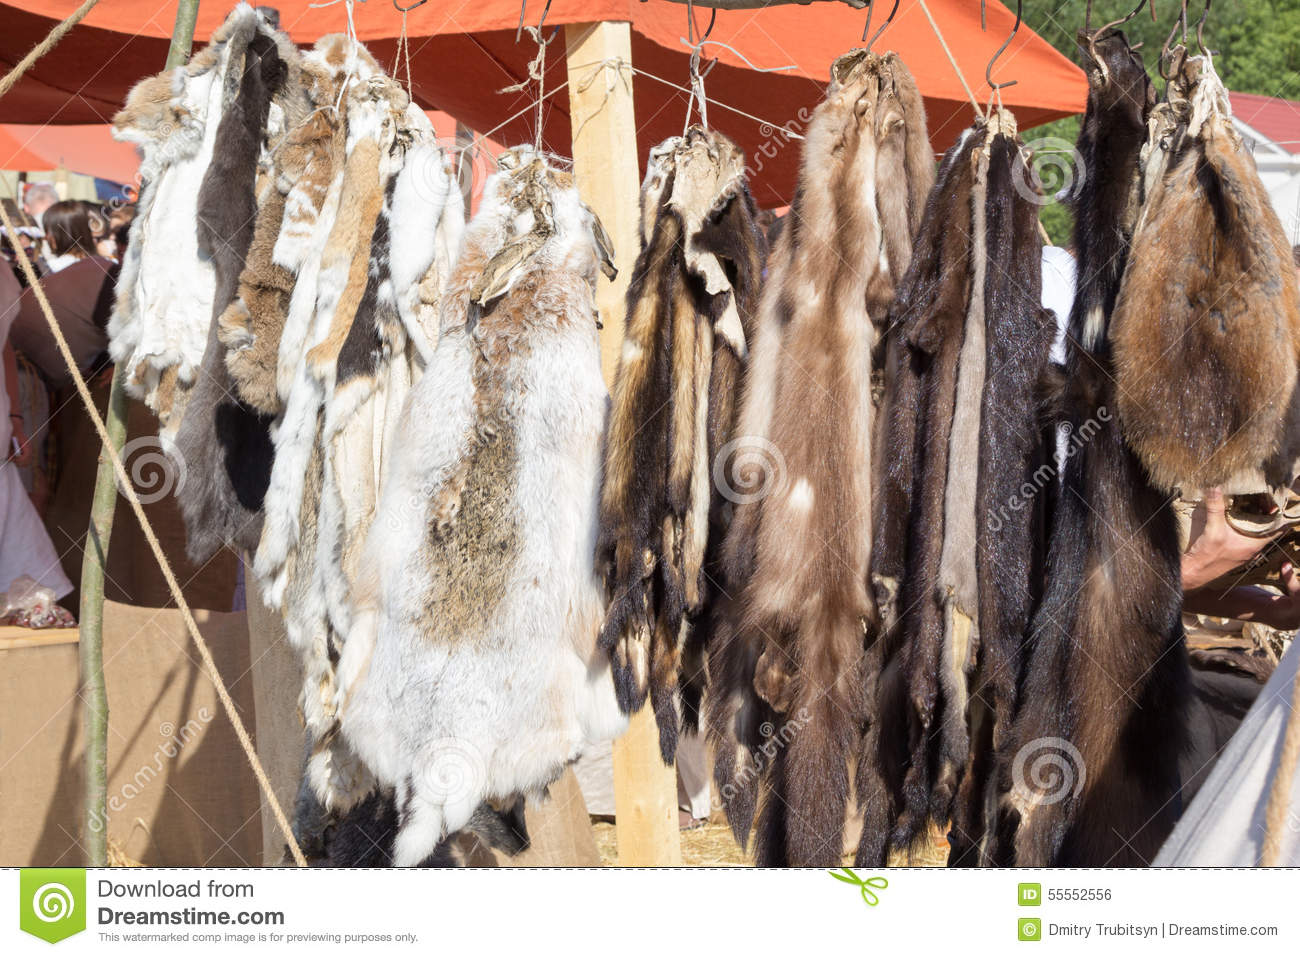 Pelts of fur animals hang on rope